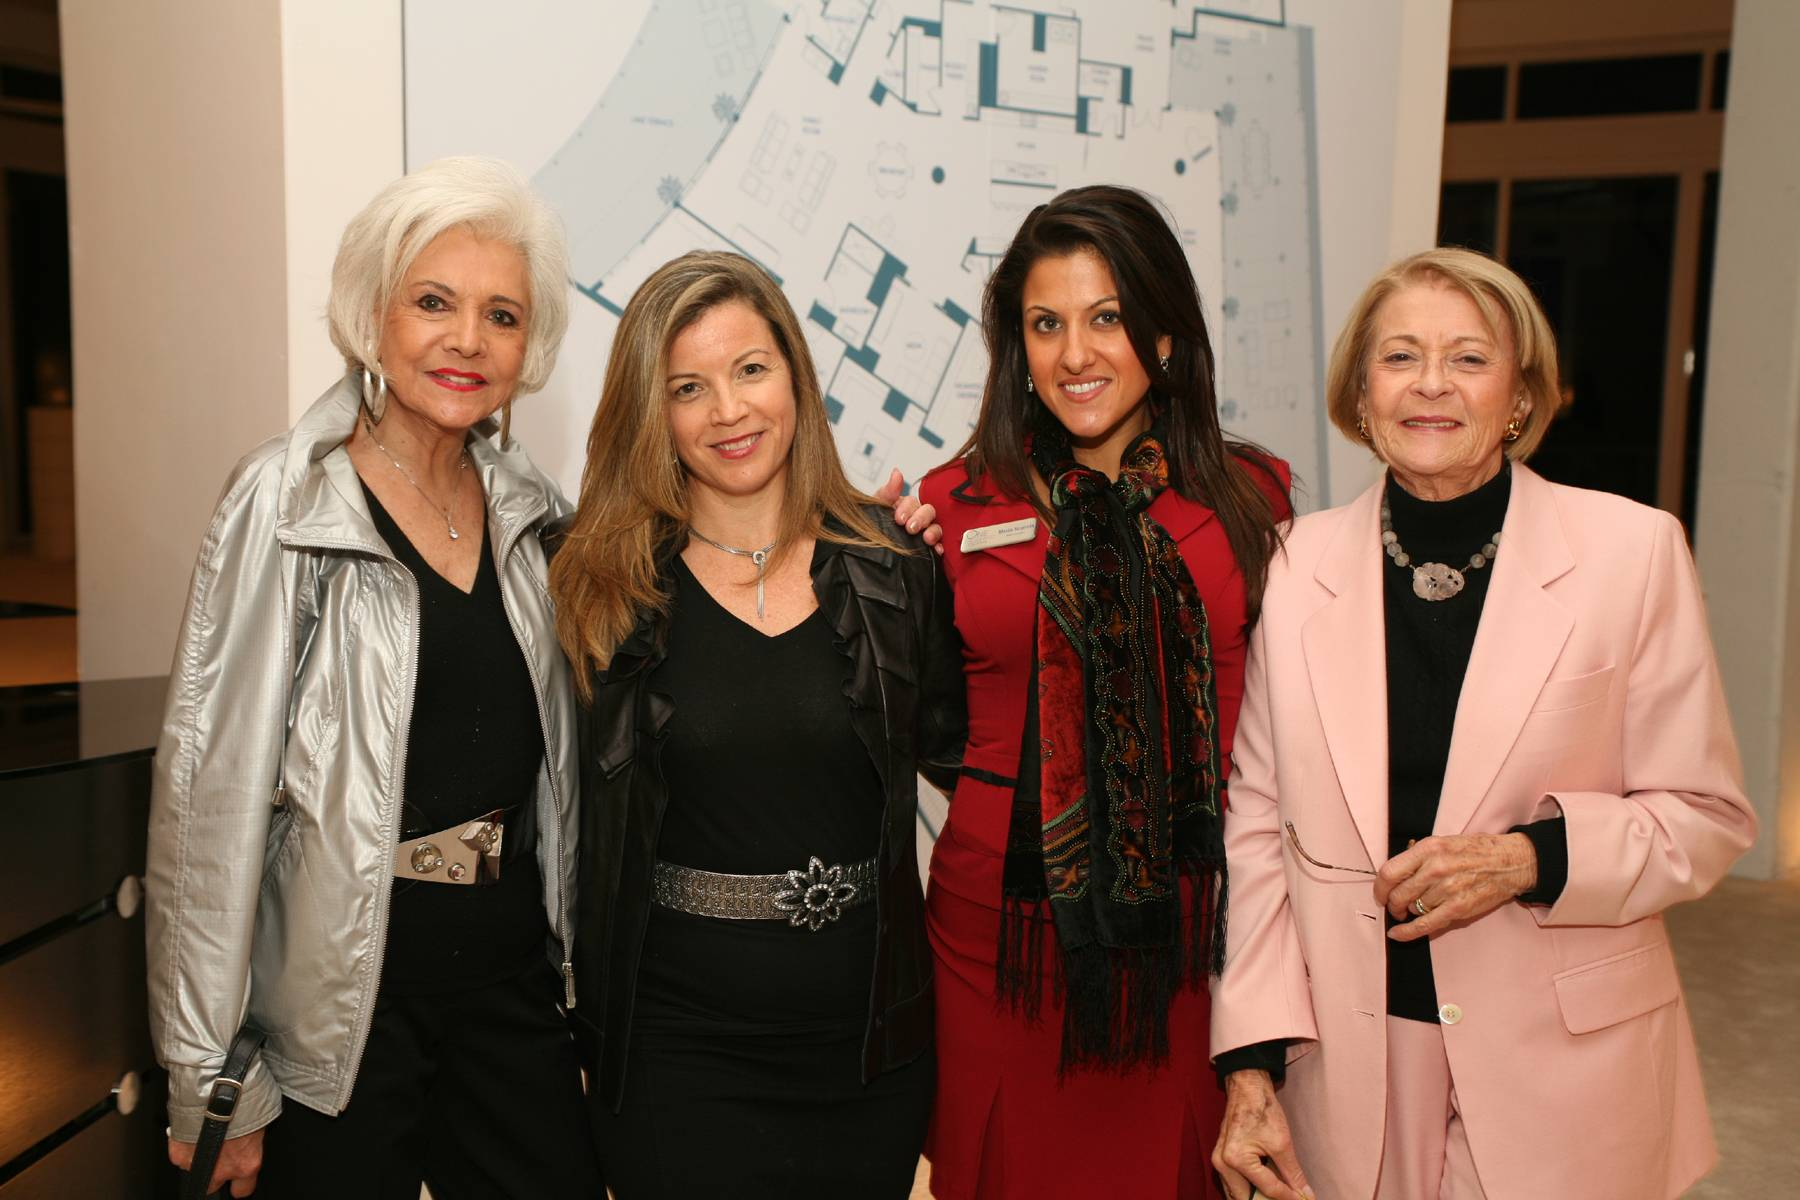 Haute Event: The Luxury Residences at One Thousand Ocean in Boca Raton